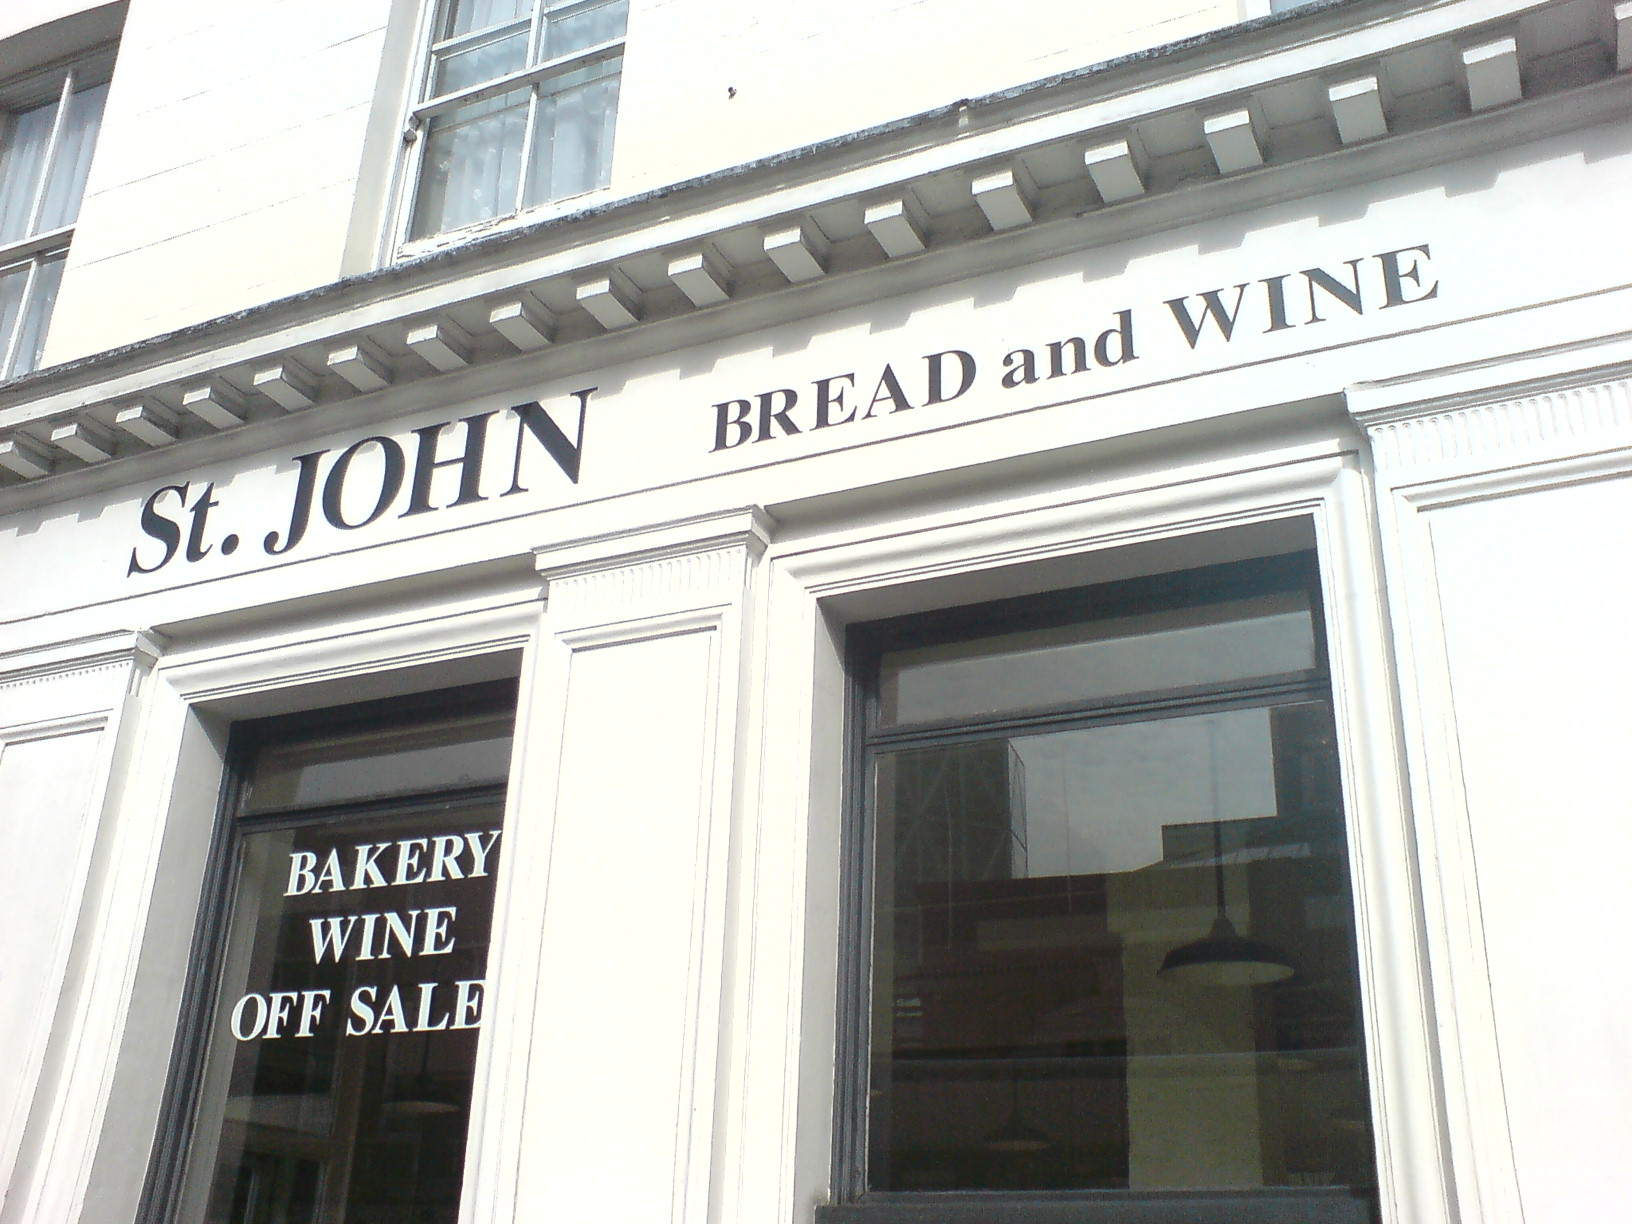 St. John Bread & Wine London